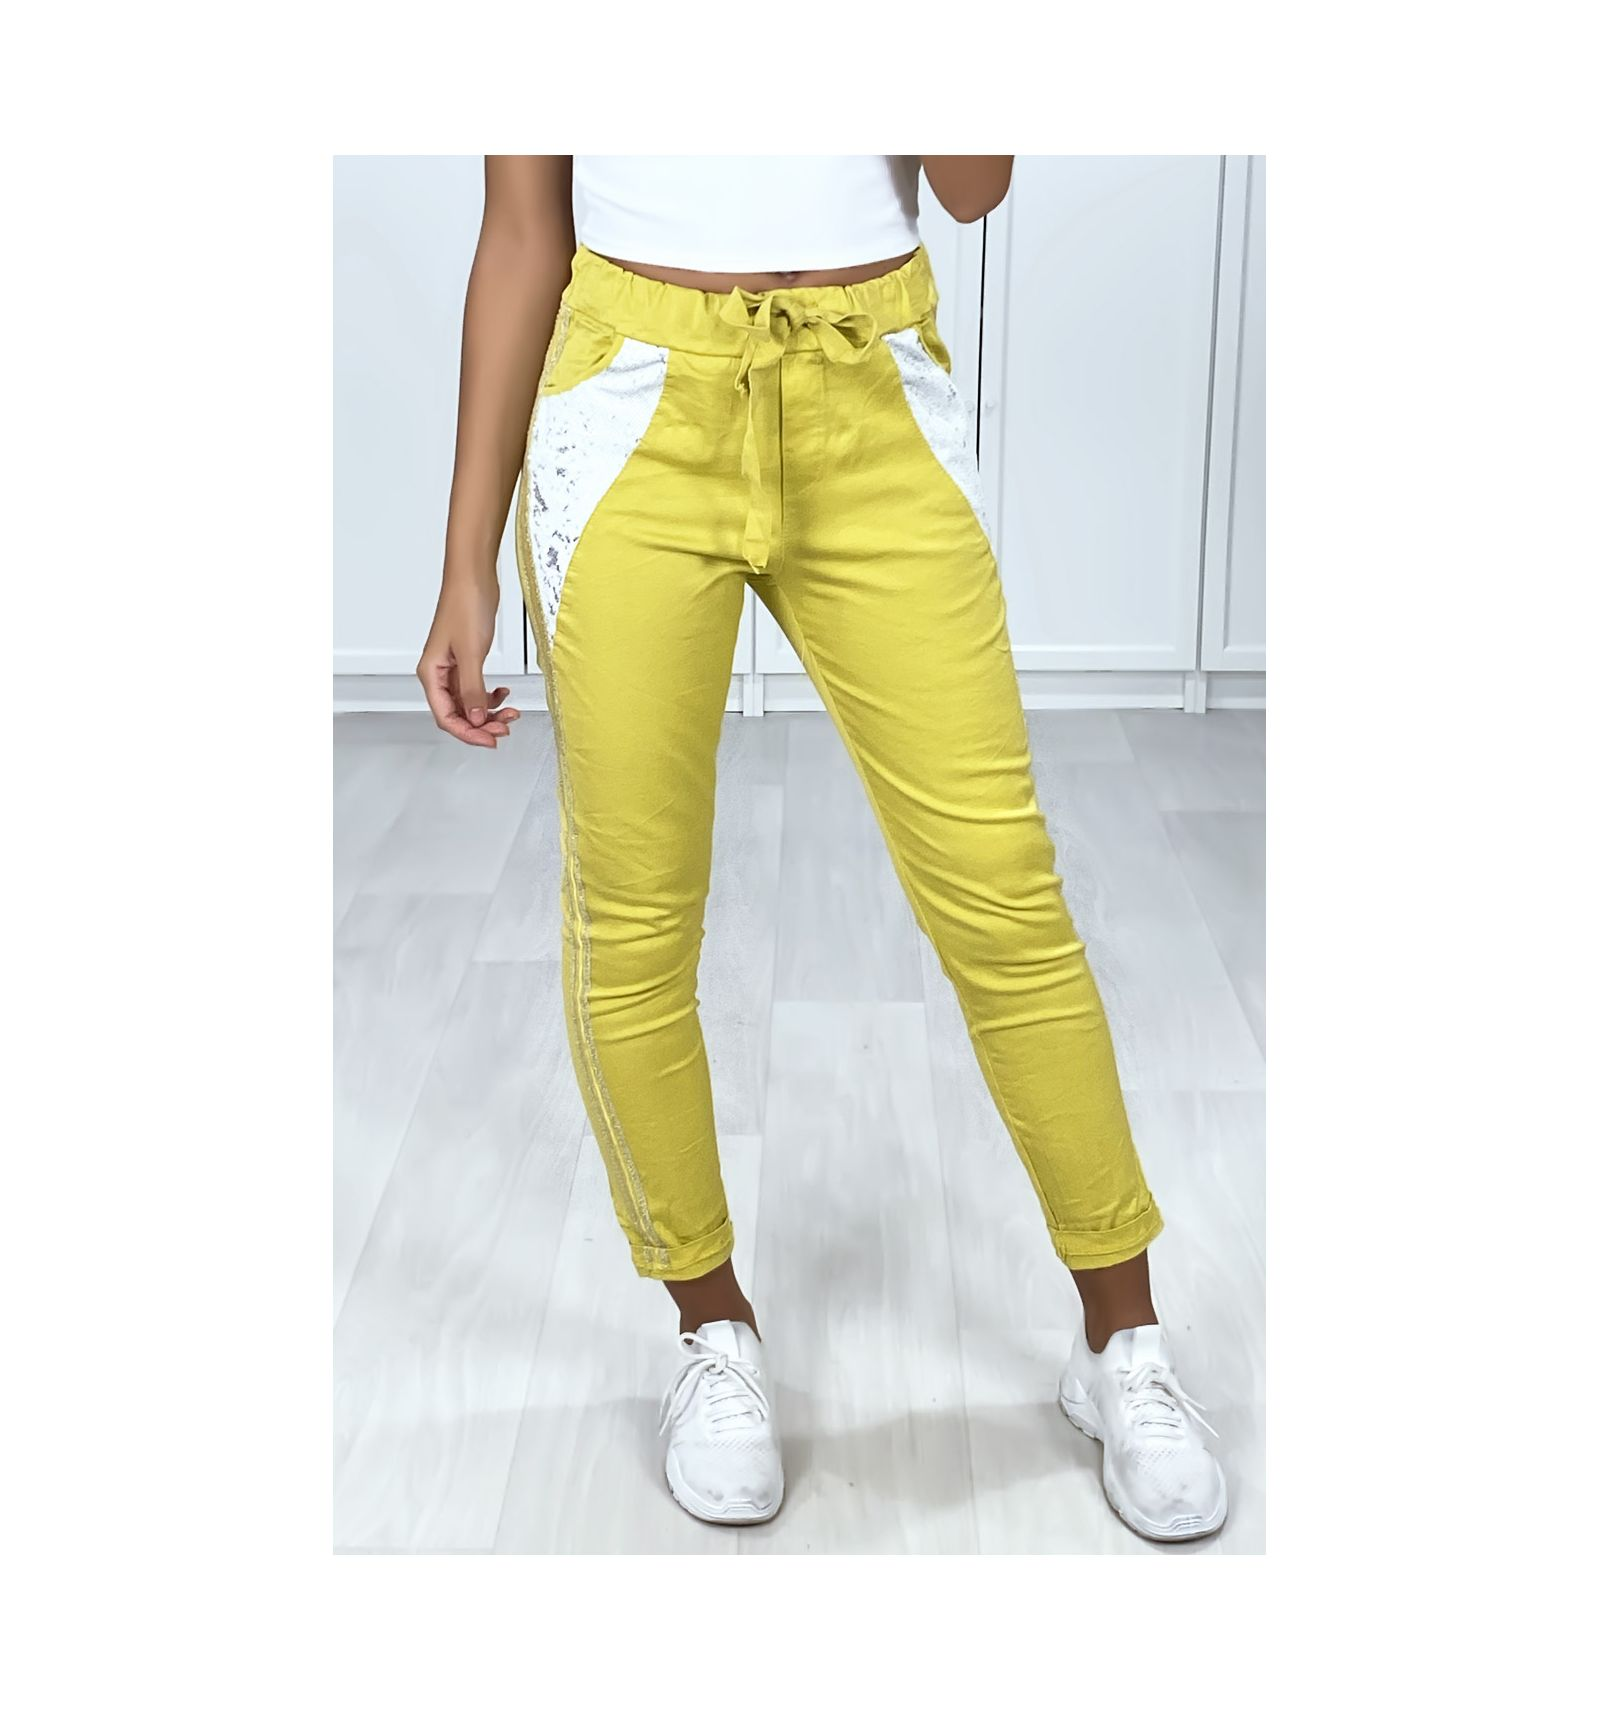 Mustard Cotton Pants For Women With Glitter Stripe And Sequins On The Pockets